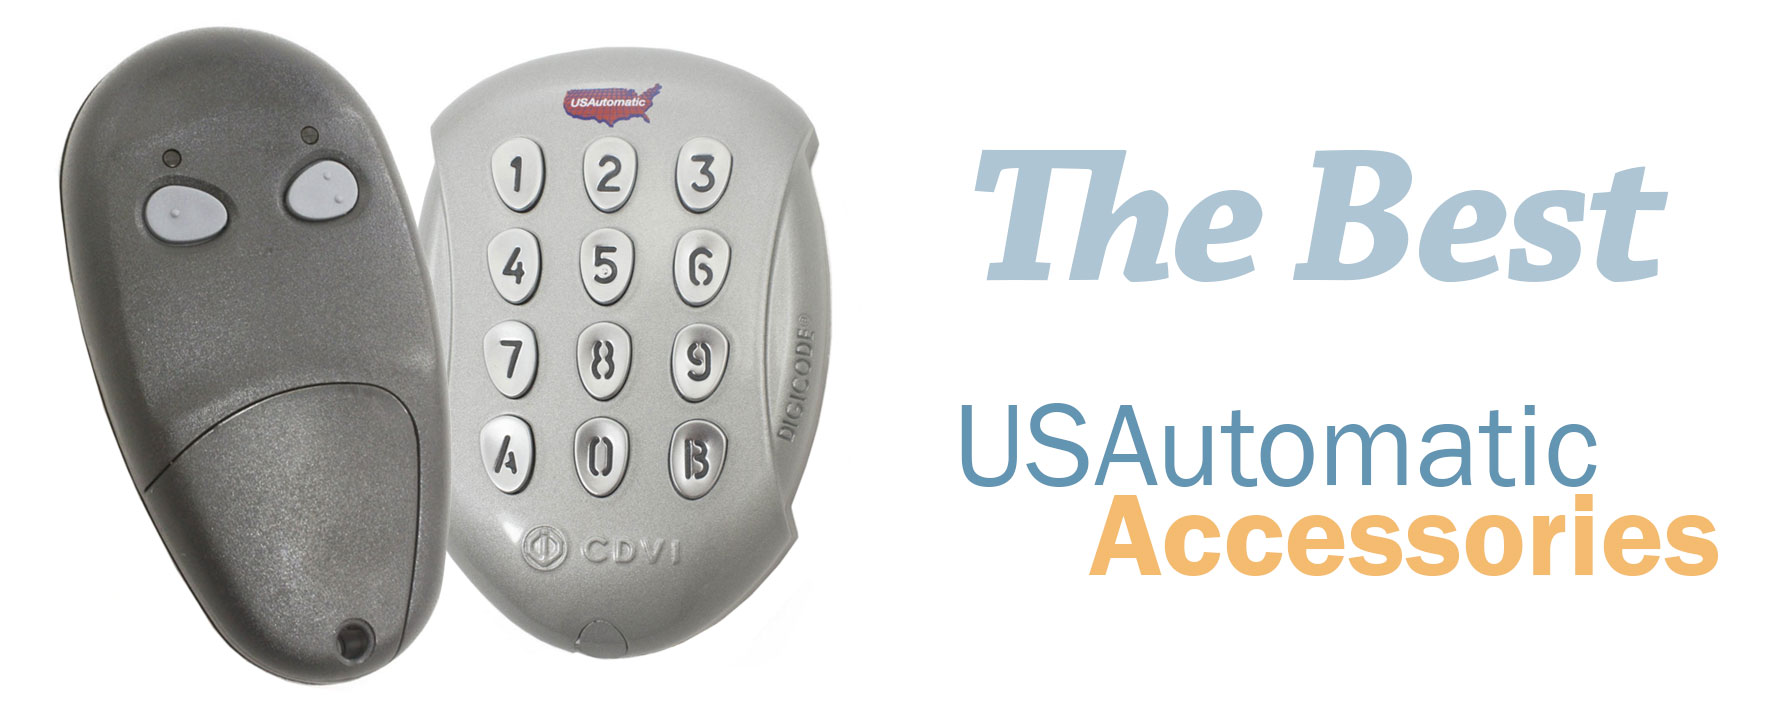 USAutomatic Accessories